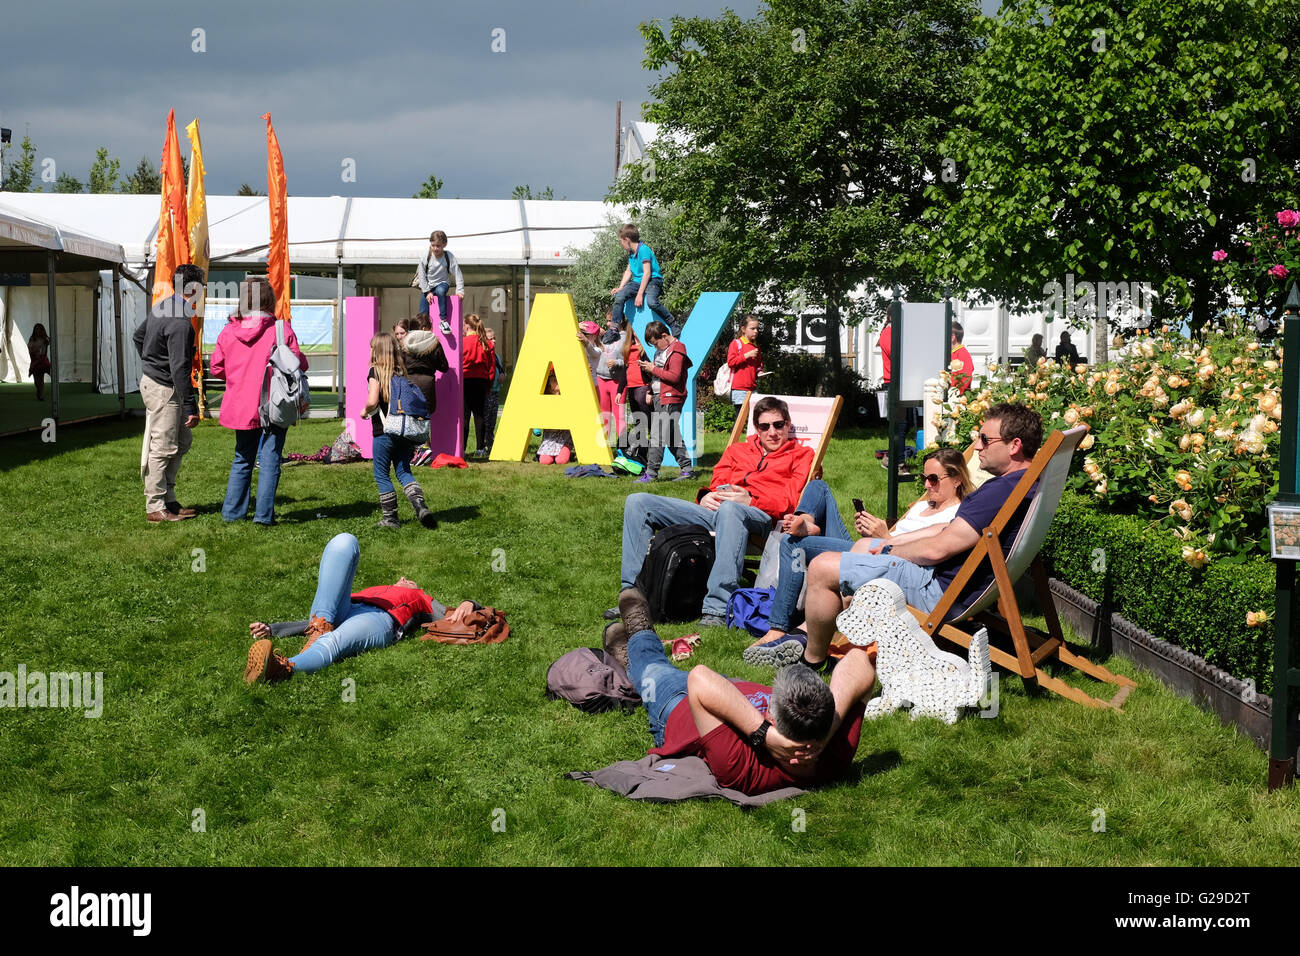 Hay Festival, Hay on Wye, Wales, UK. 26th May, 2016. Opening day for this years literary and arts festival which - Stock Image